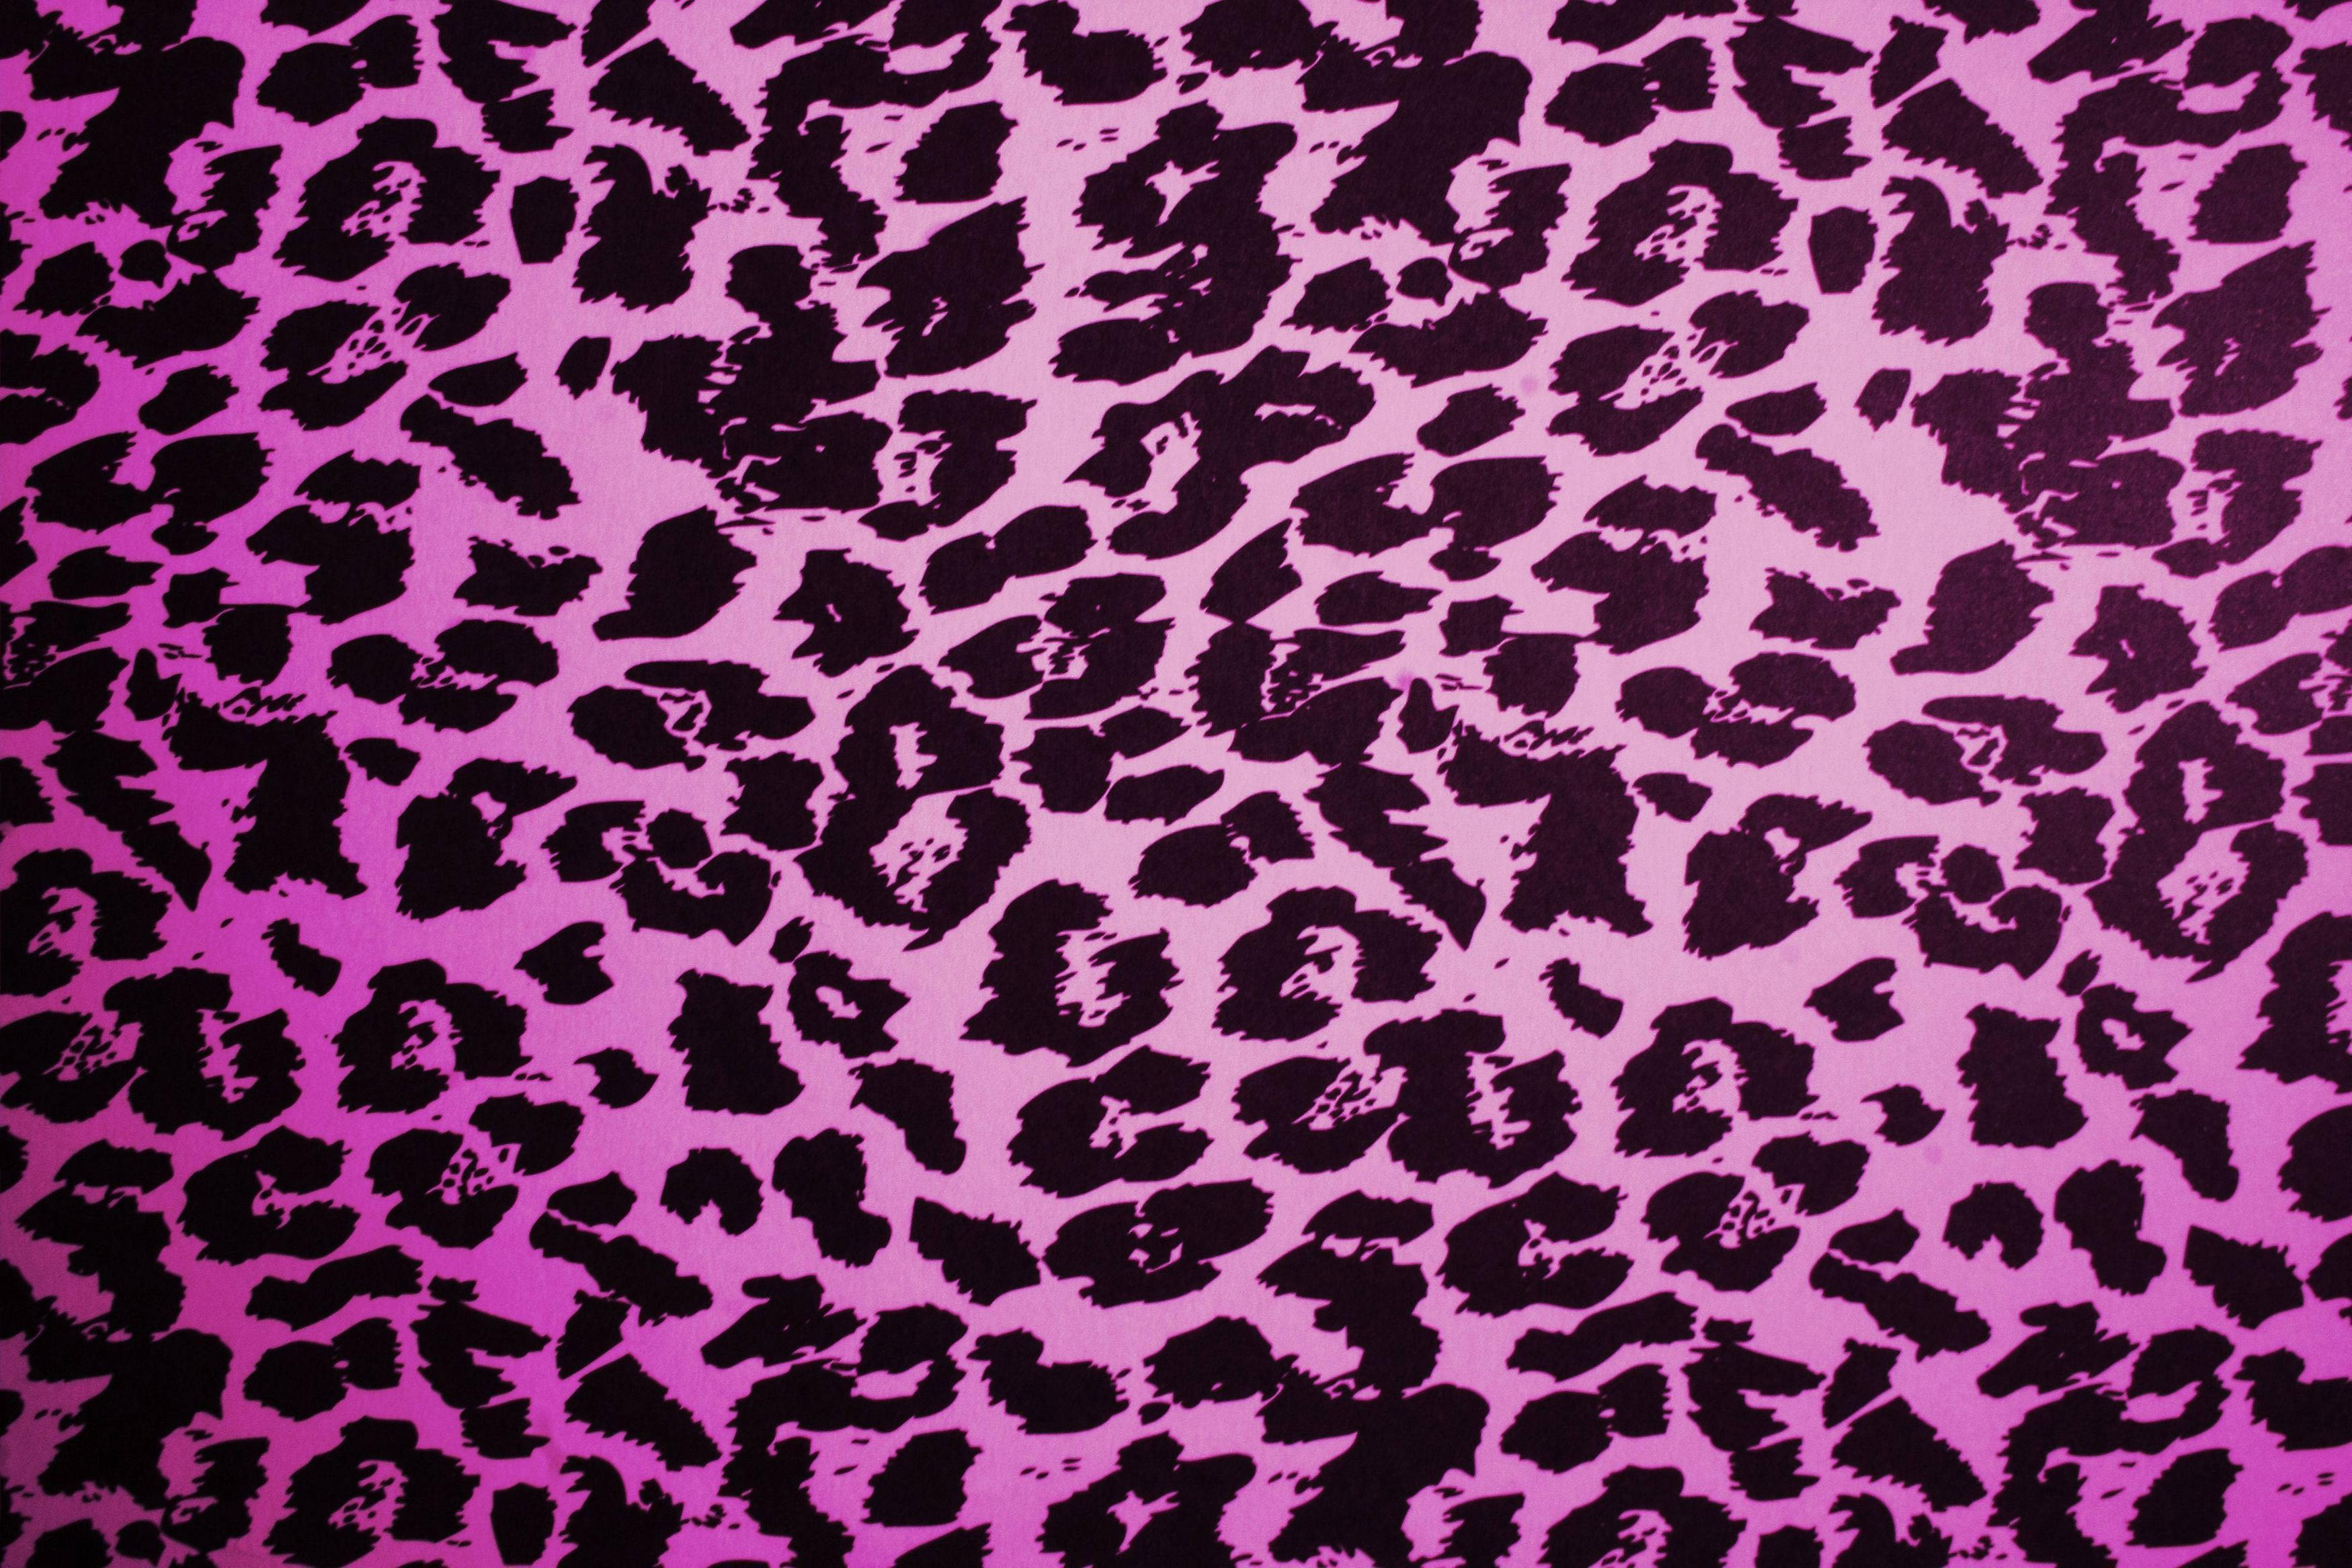 Light pink cheetah print background - photo#12